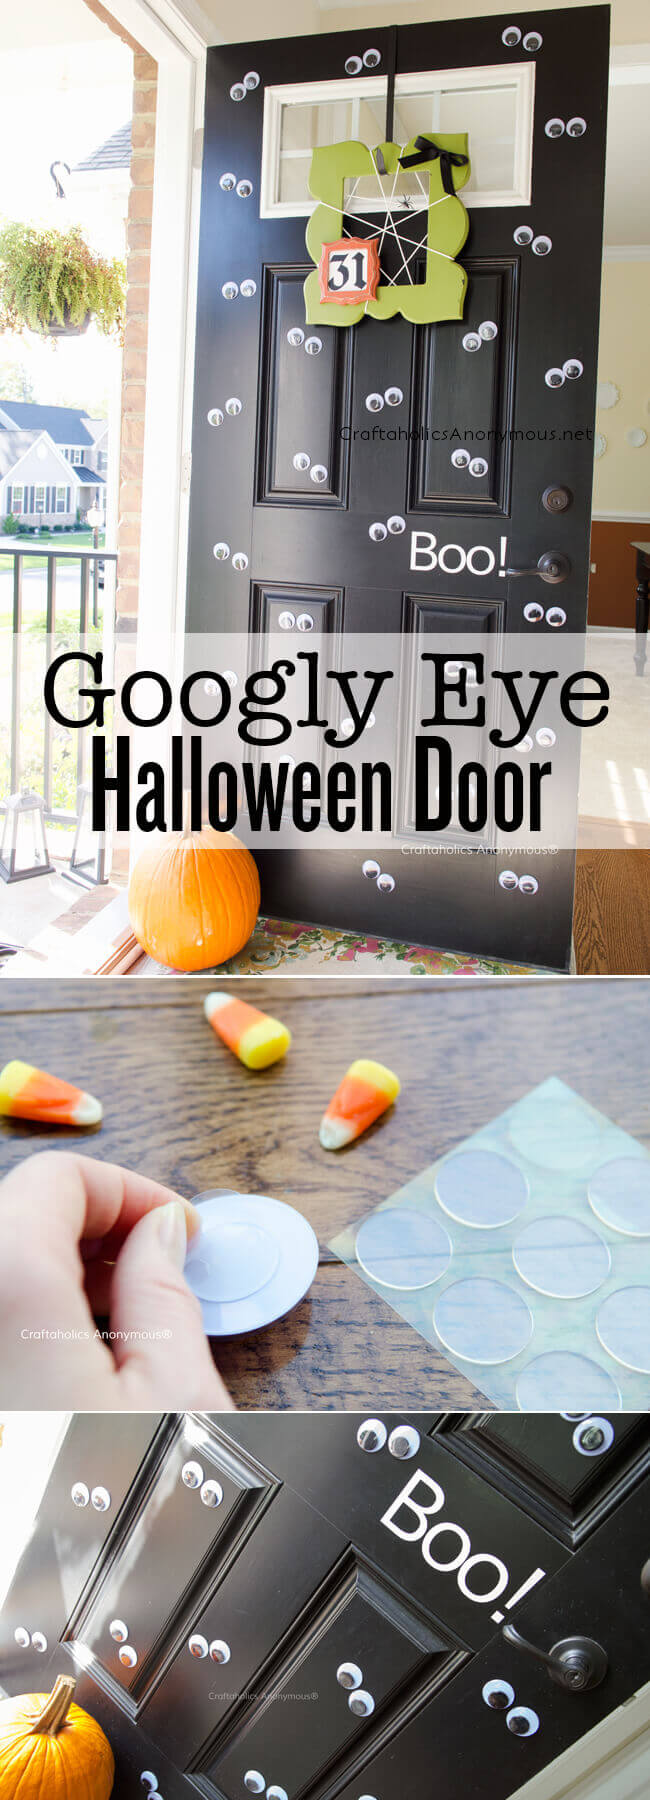 Halloween googly eye door.